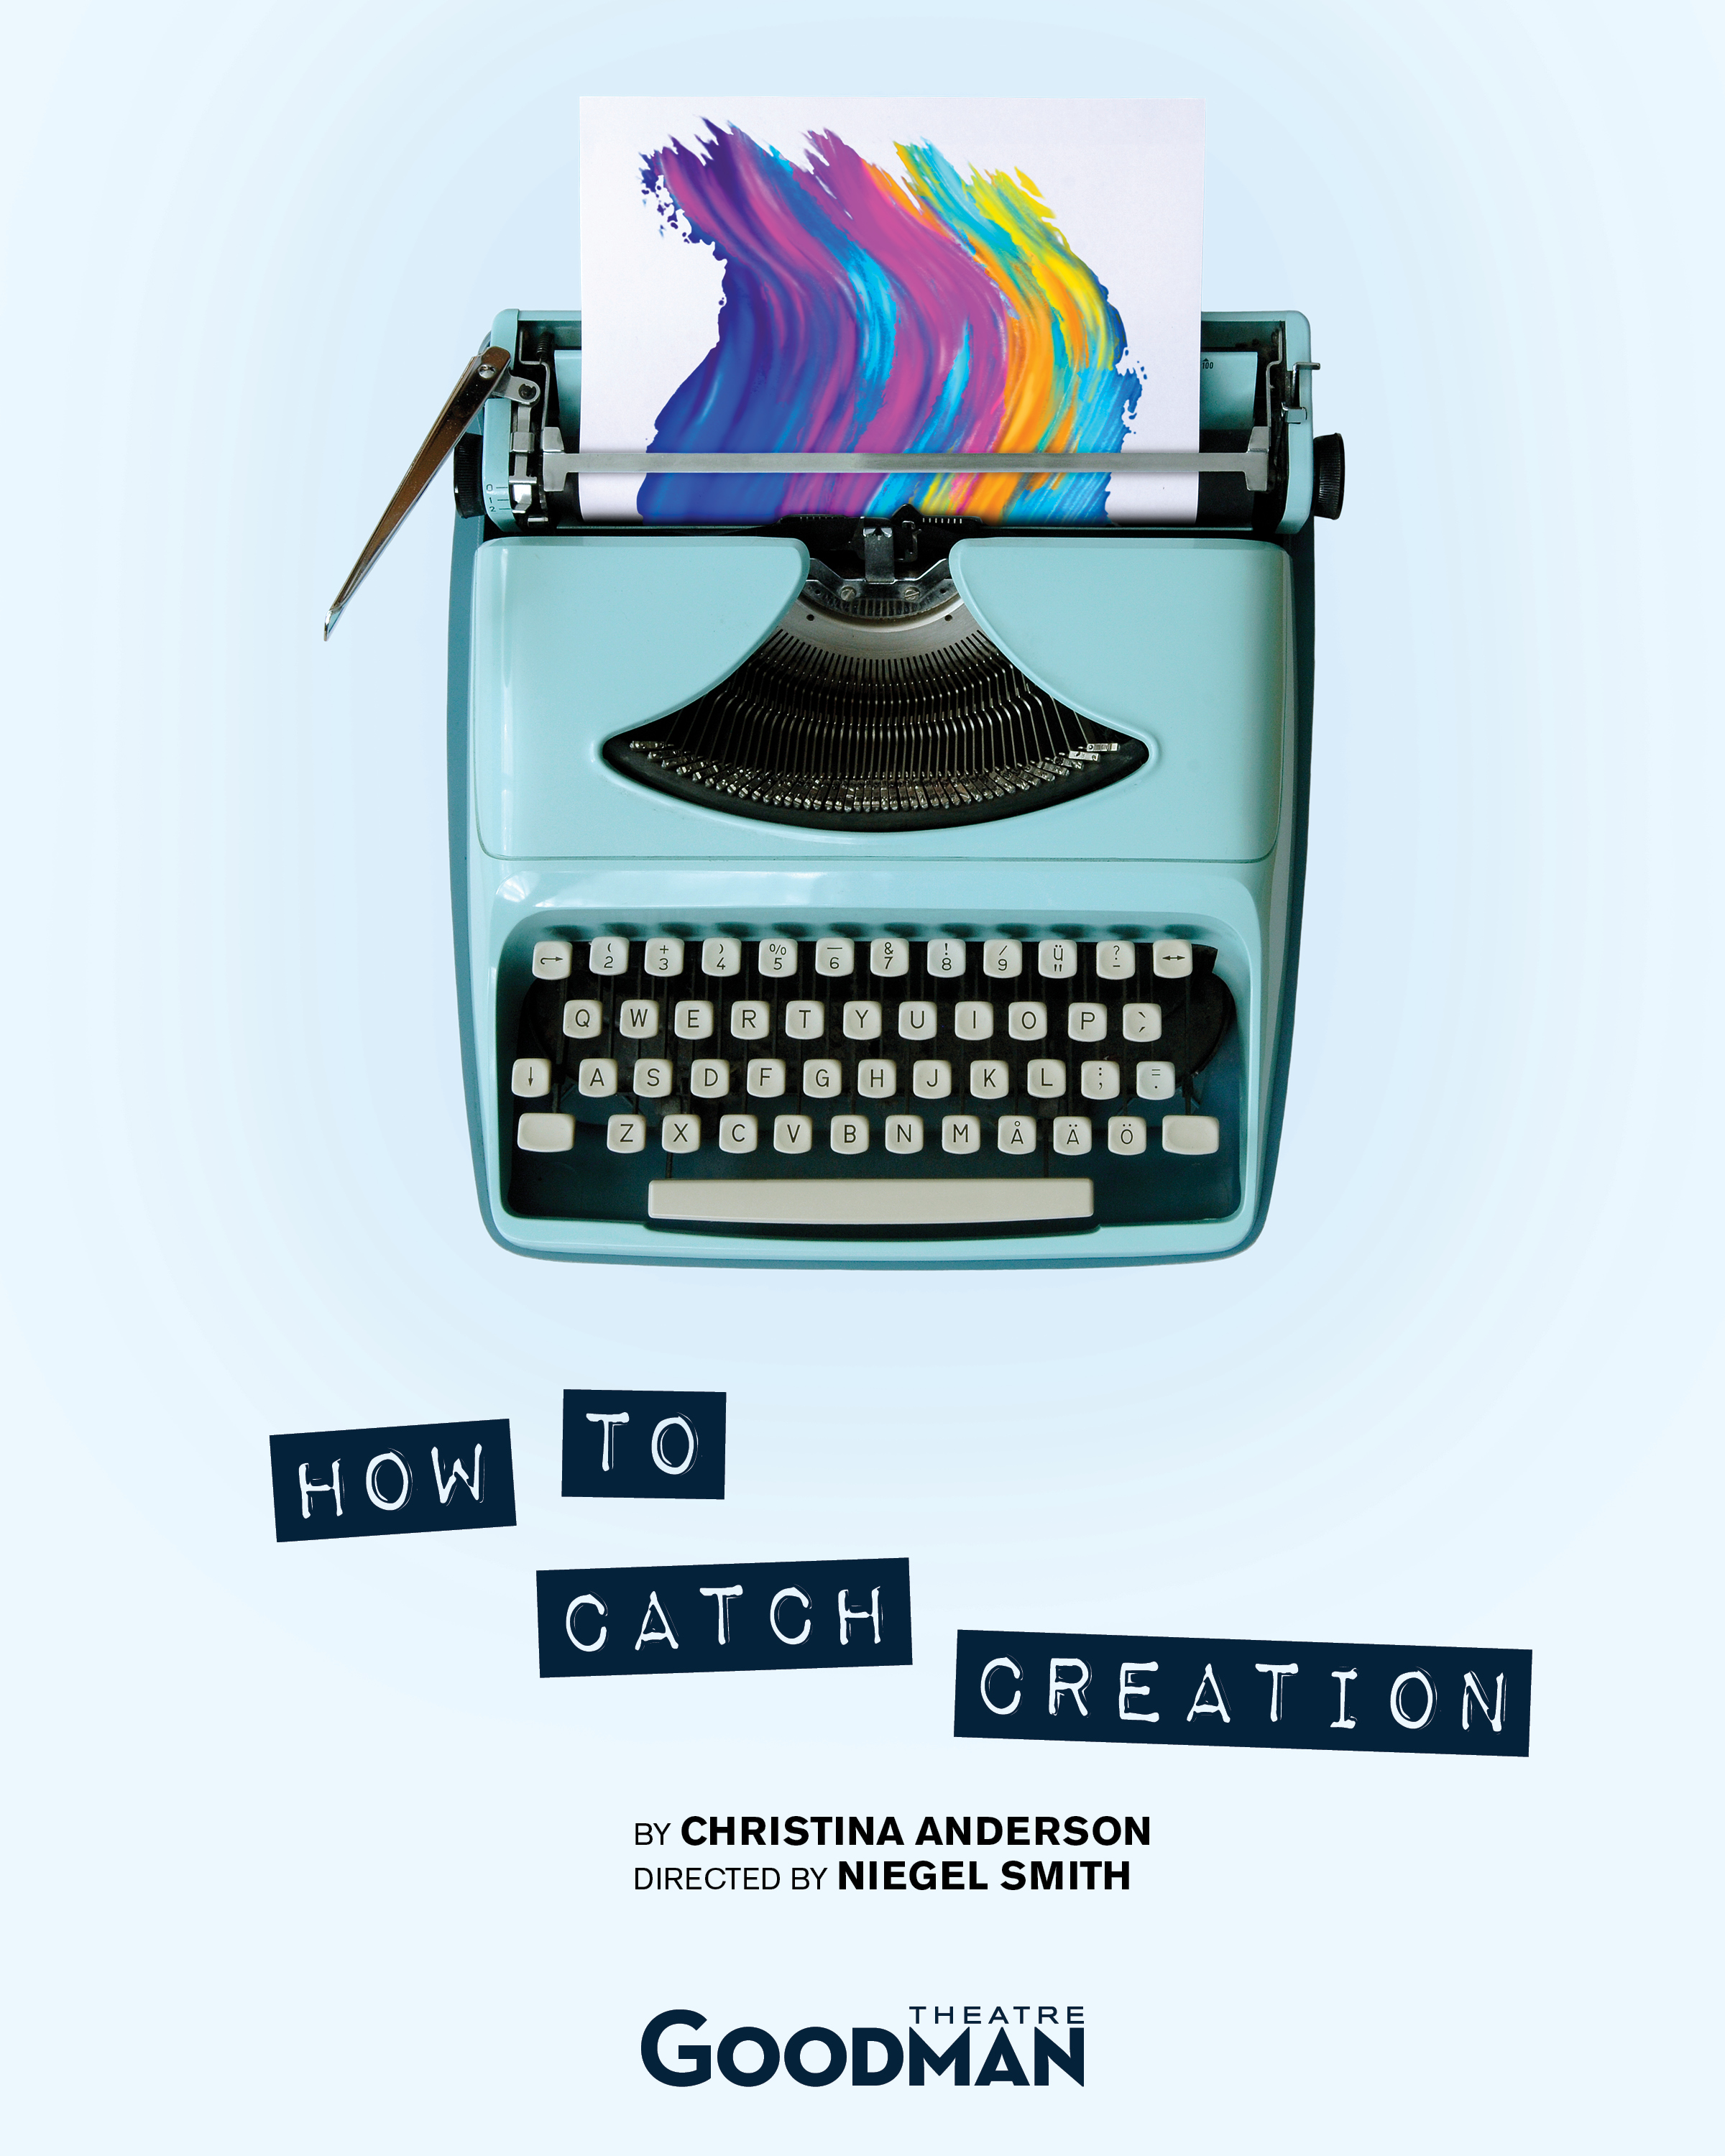 How to Catch Creation, Poster Art 8X10